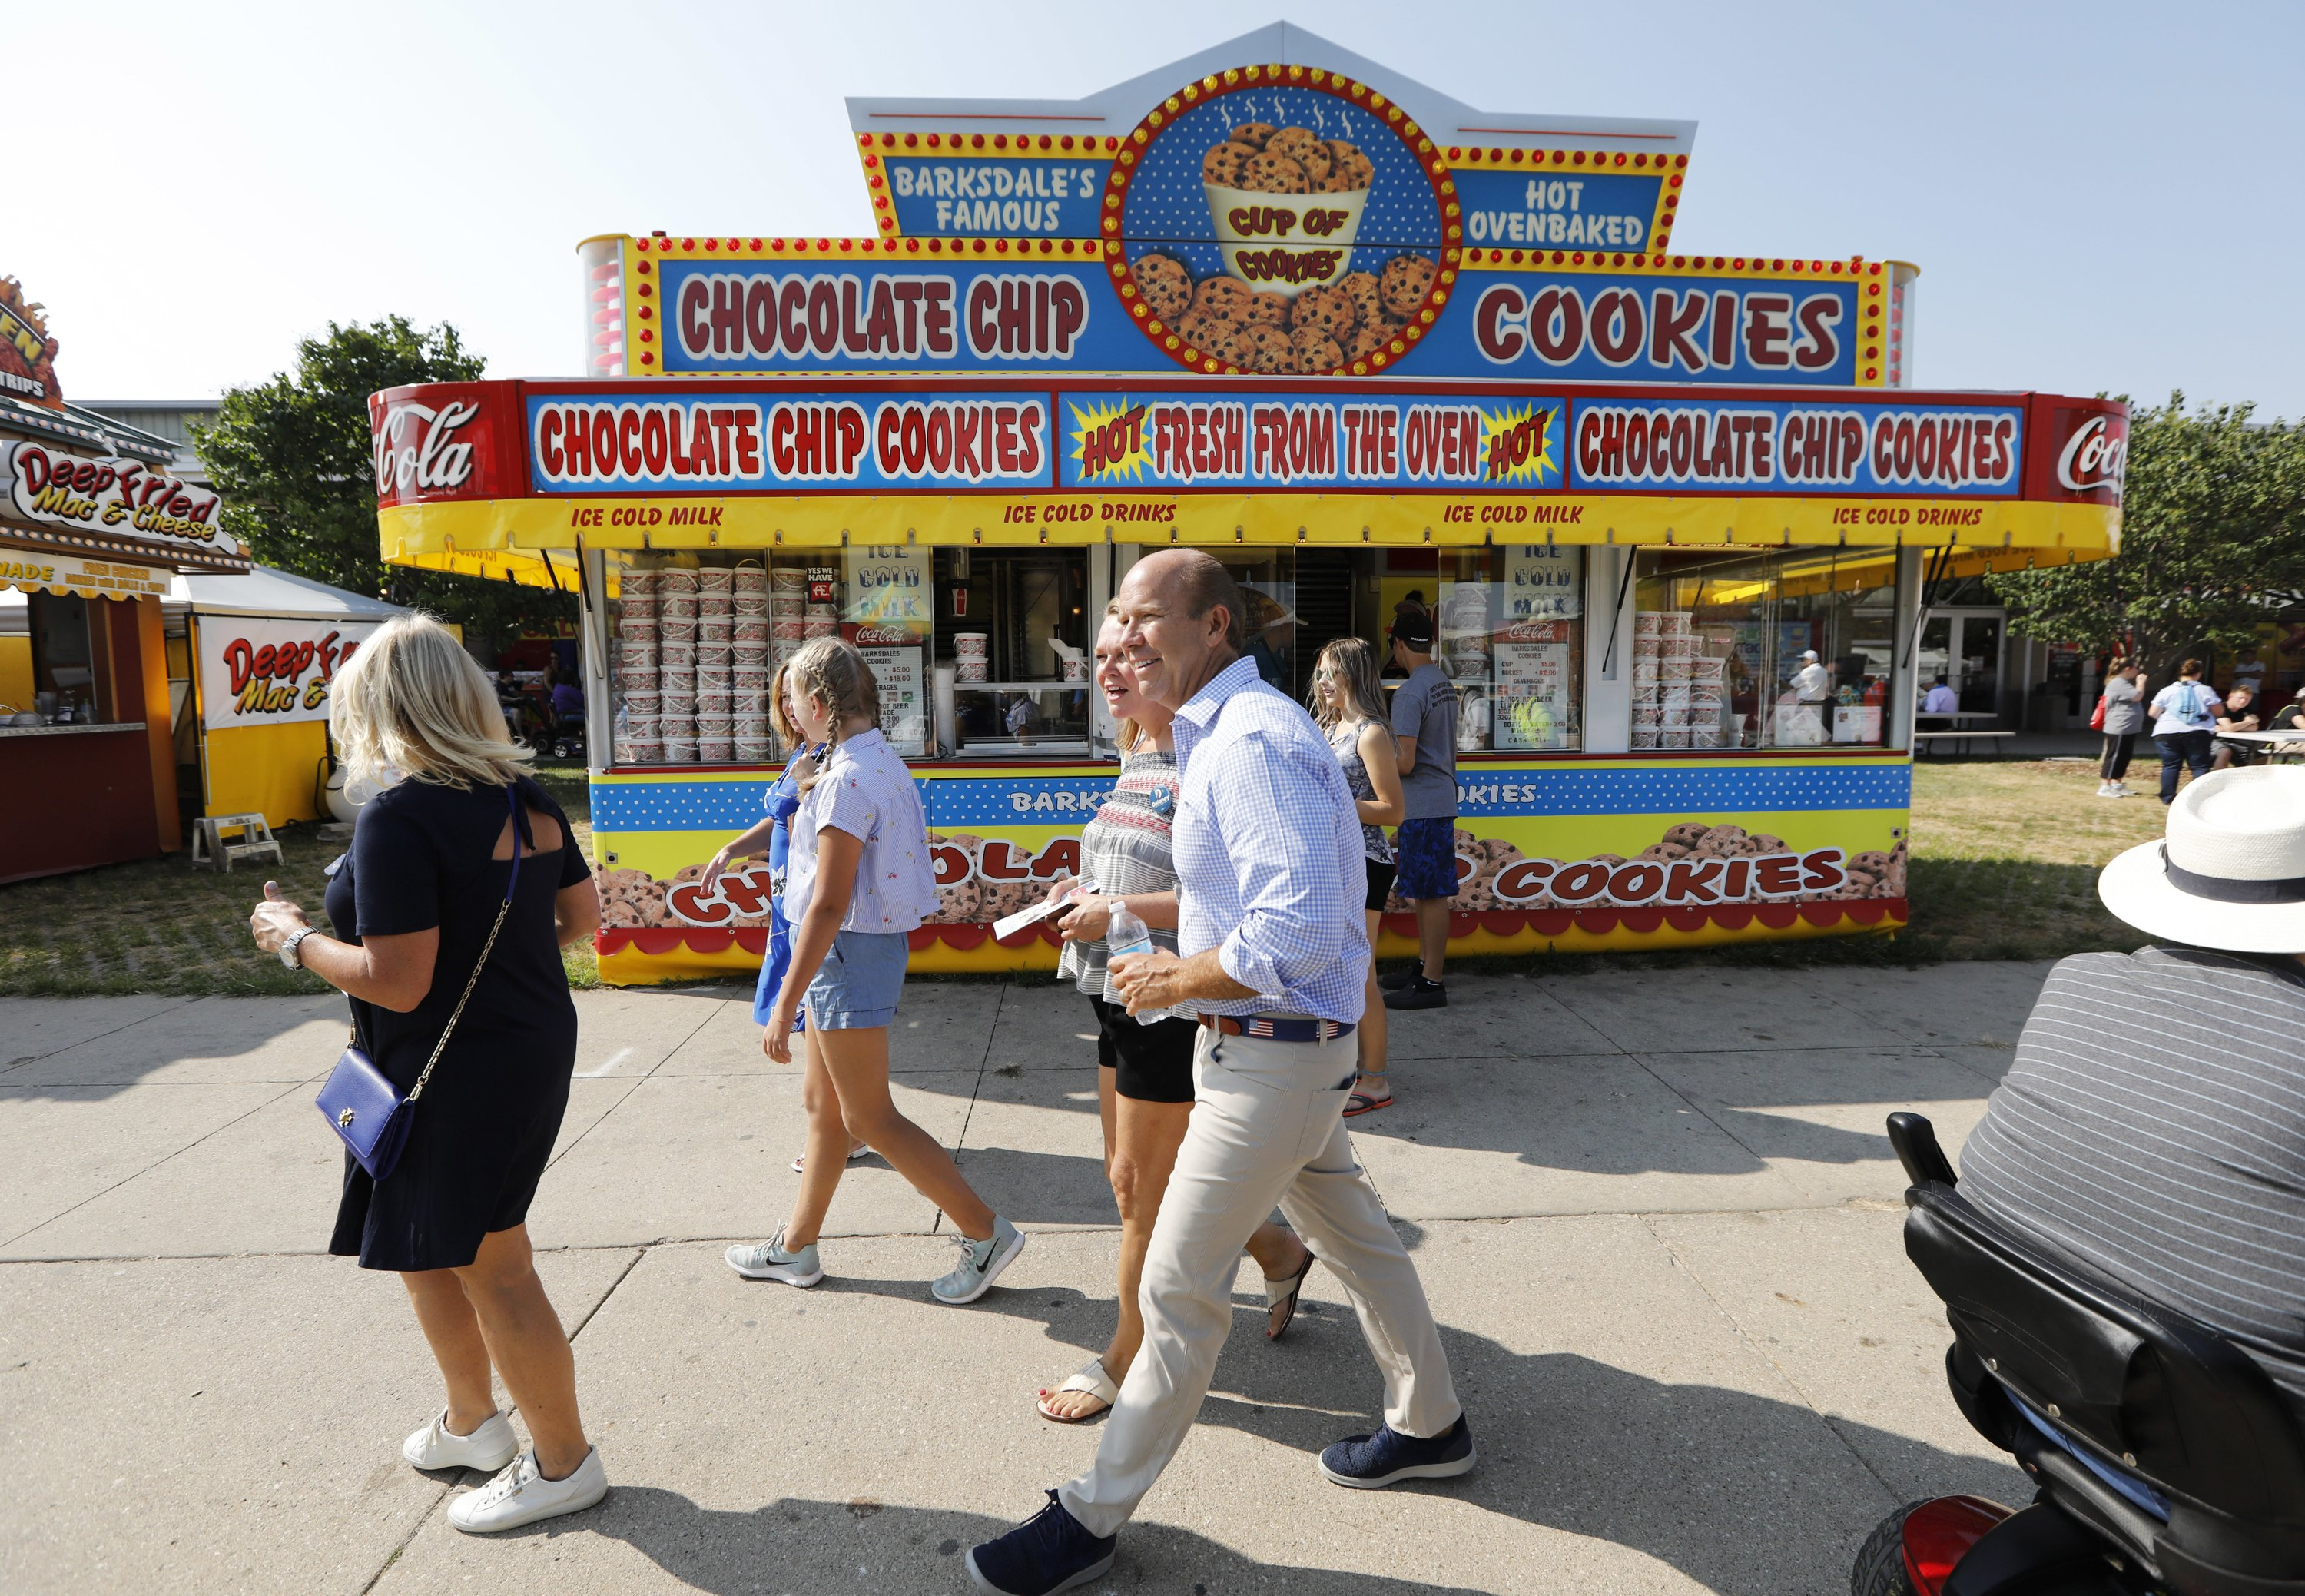 Beaumont Fair 2020.Little Known Democratic 2020 Hopefuls Make Early Iowa Visits